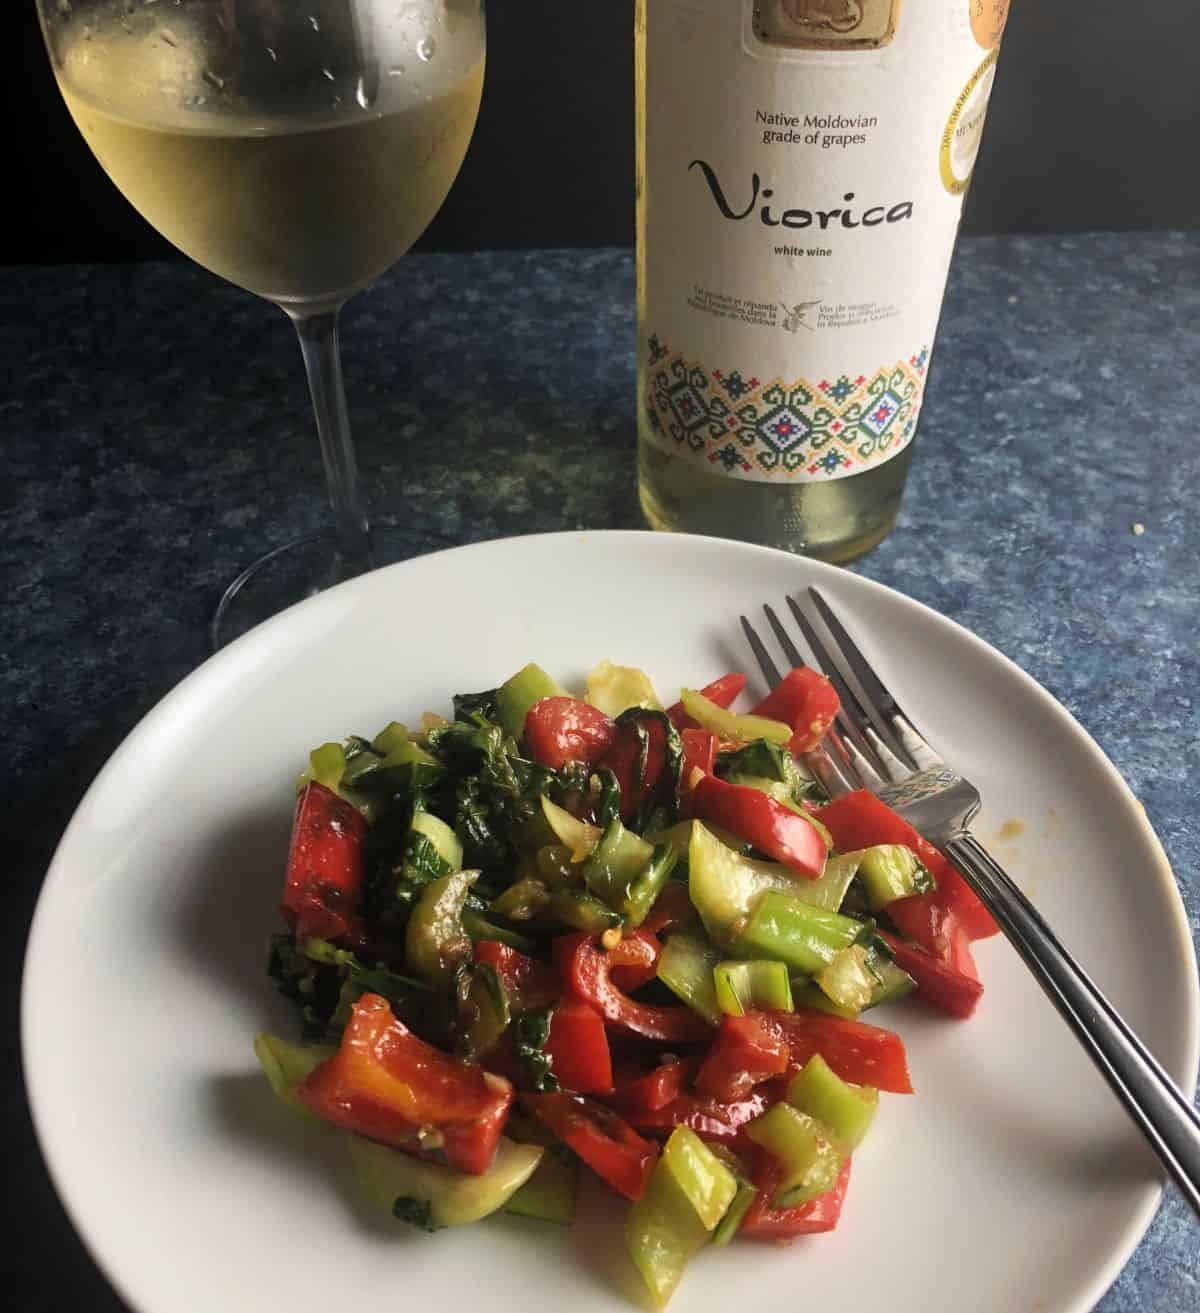 Viorica white wine served with bok choy stir-fry.